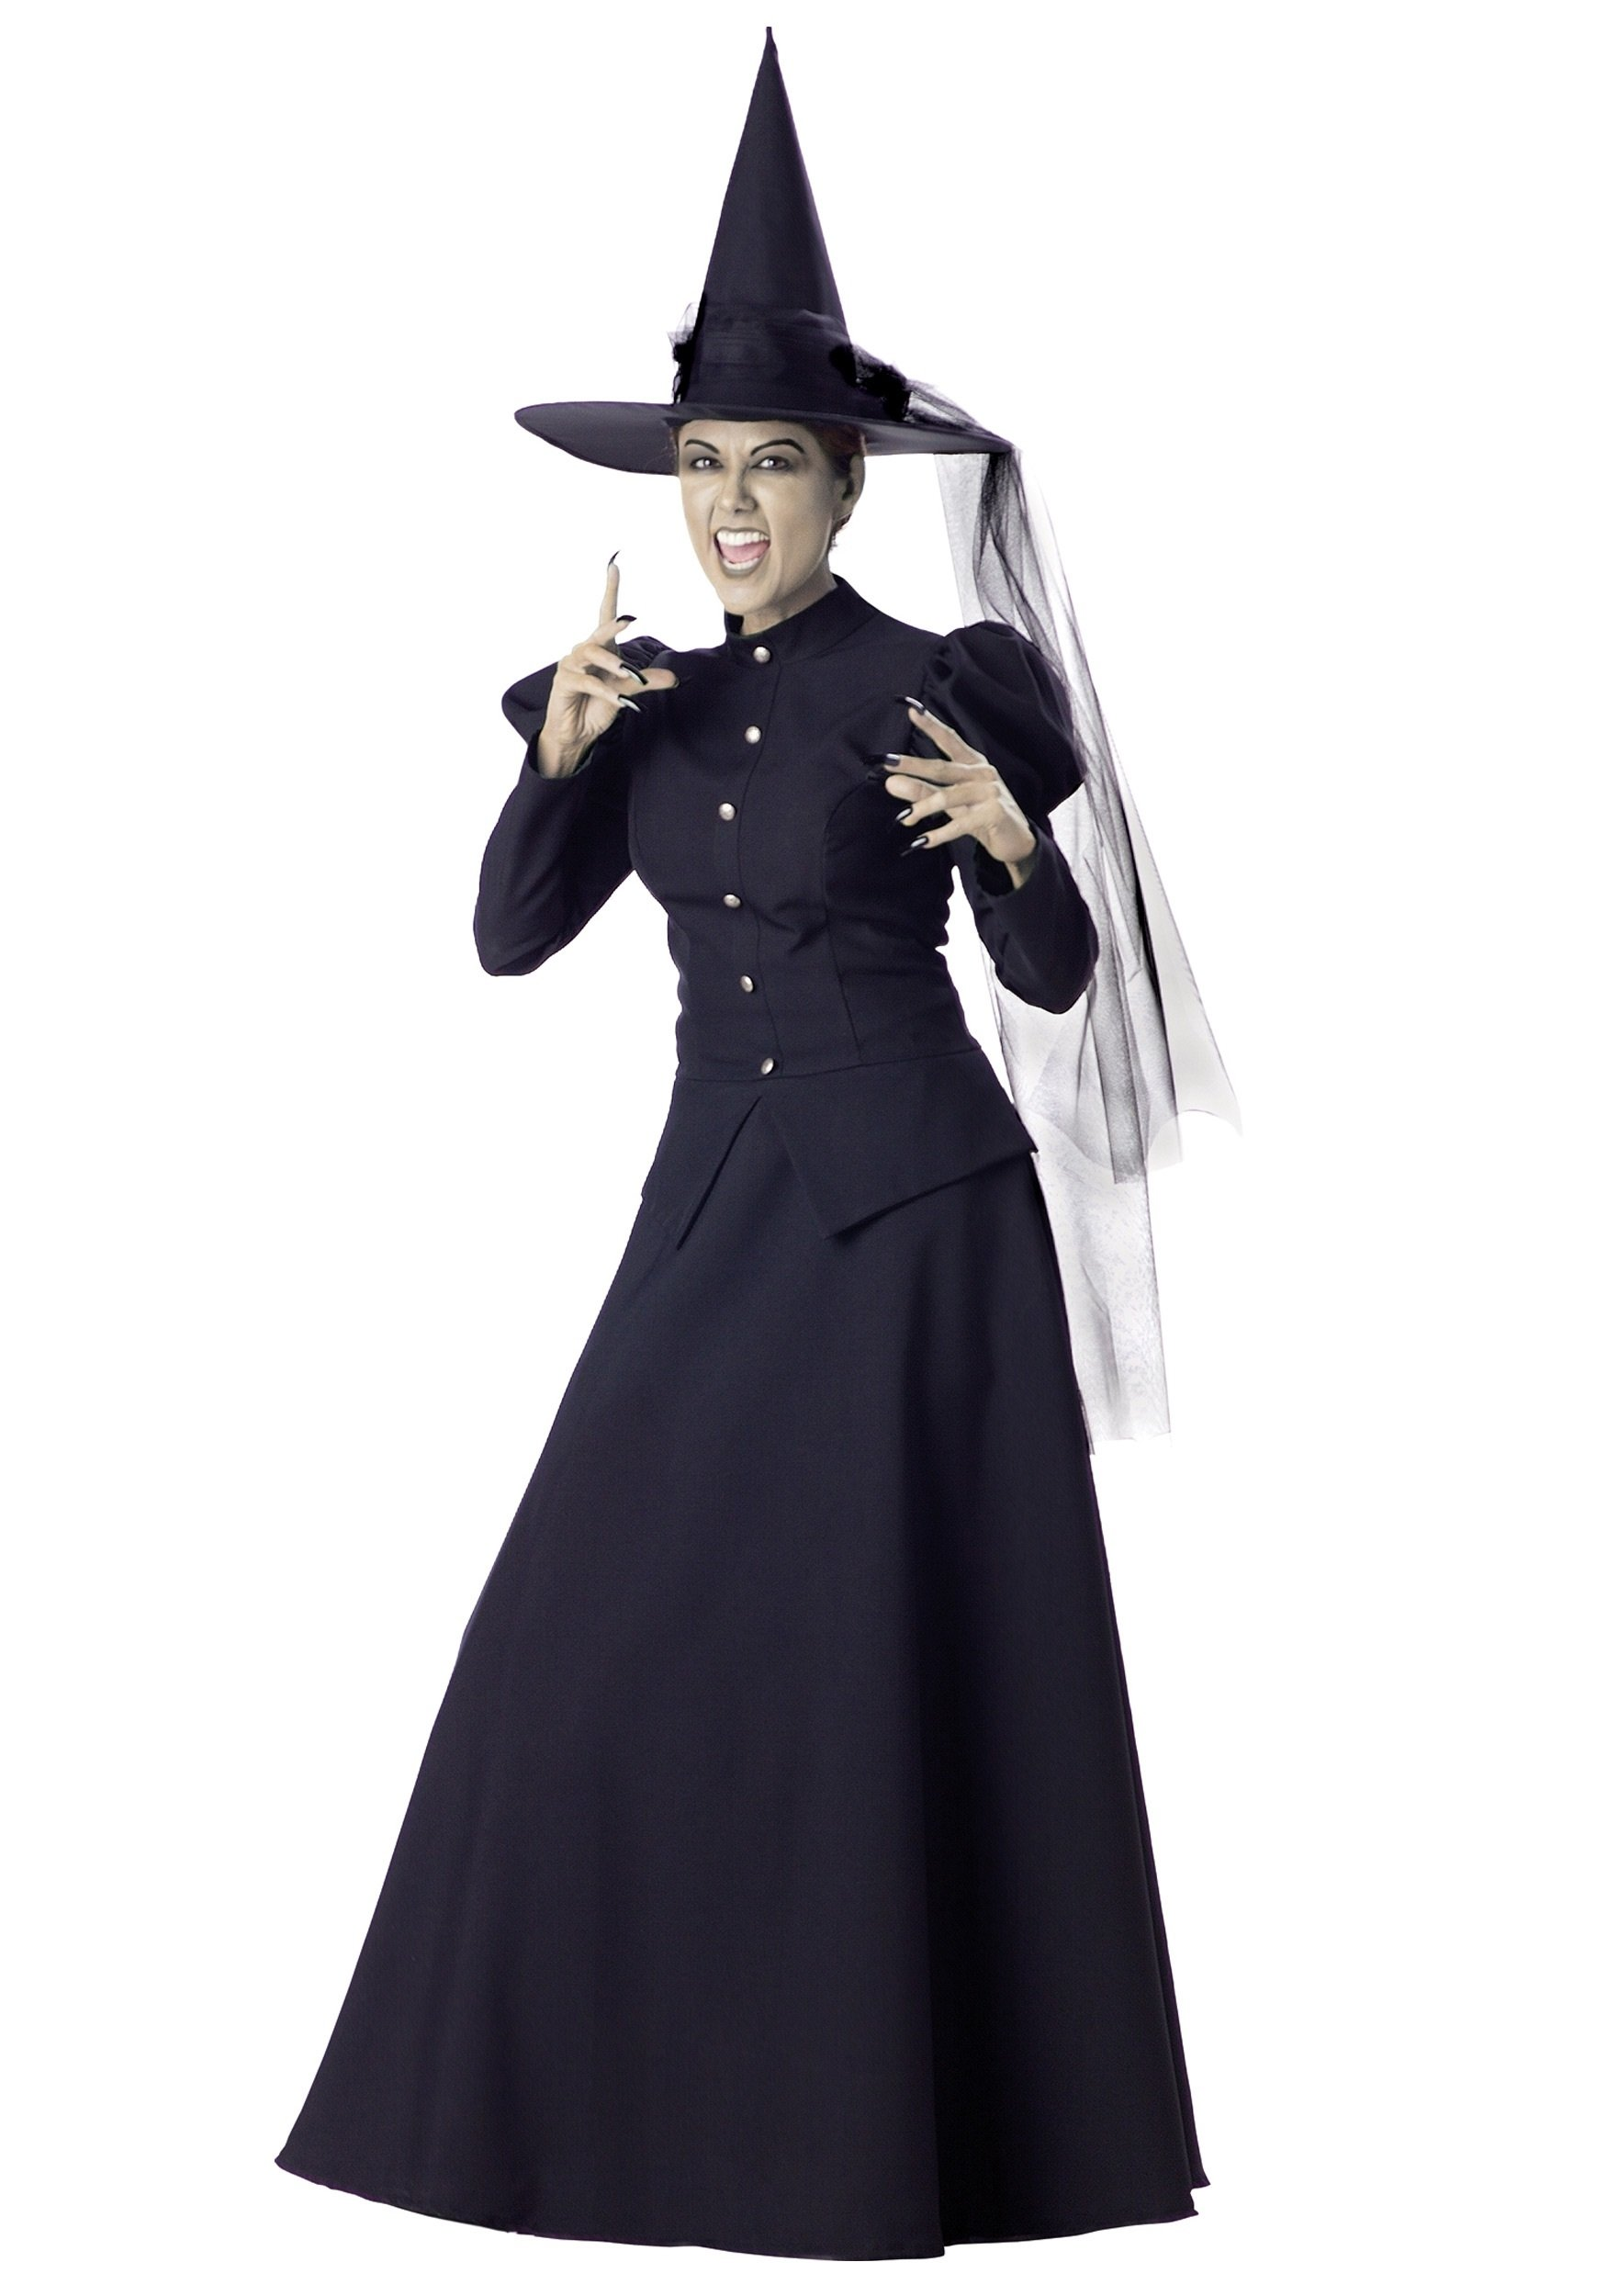 10 Wonderful Witch Costume Ideas For Women womens black witch costume 2020